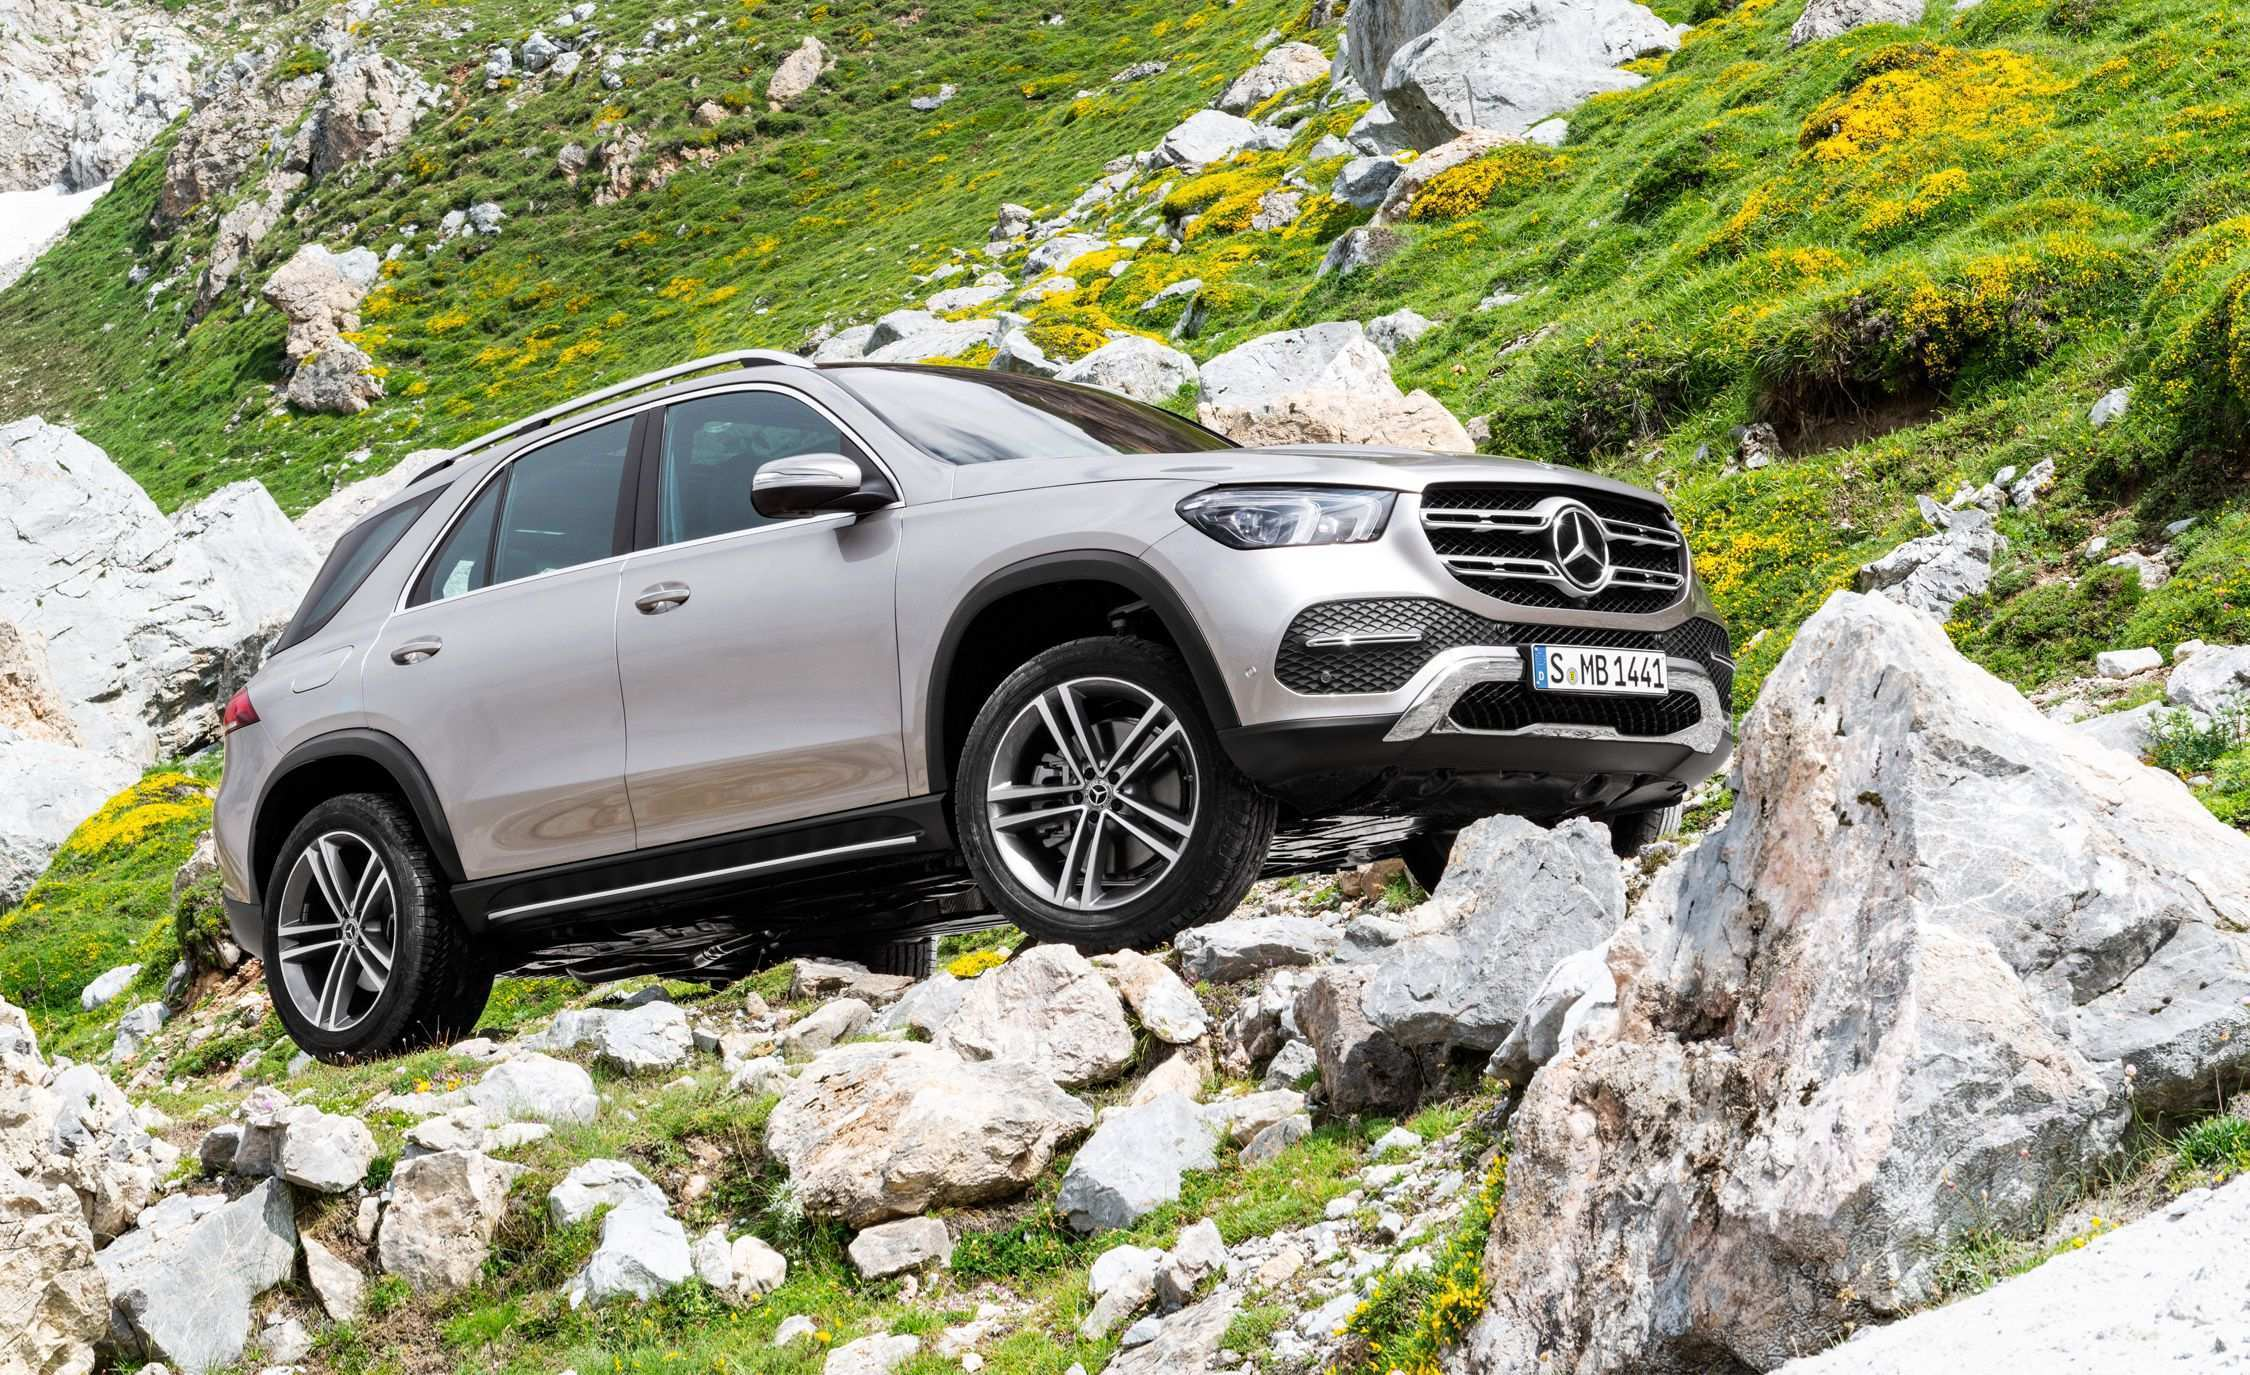 50 All New Mercedes Benz 2020 Jeepeta Price by Mercedes Benz 2020 Jeepeta